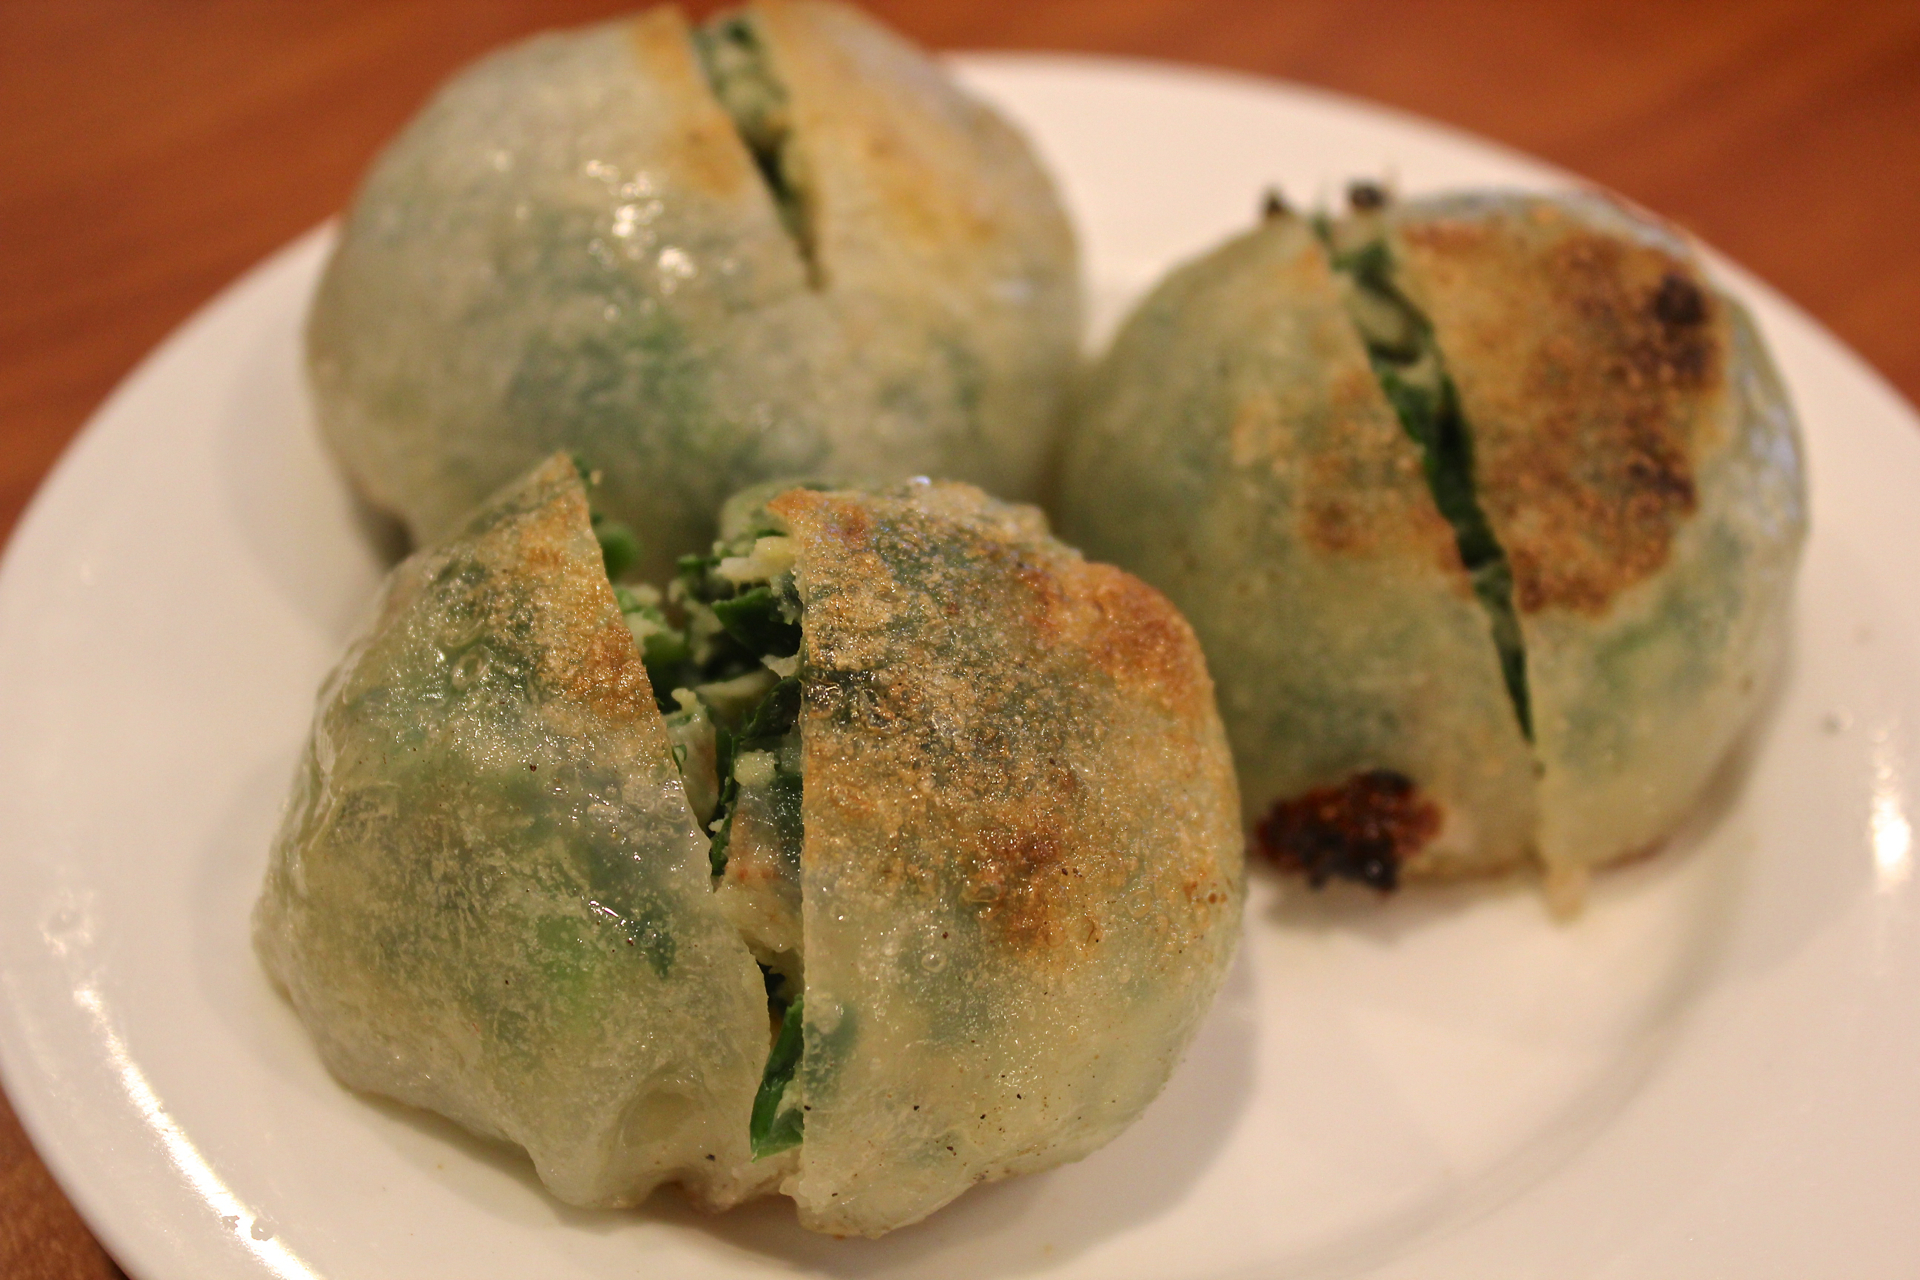 Pan-fried chive and shrimp dumplings at Ocean Delight.